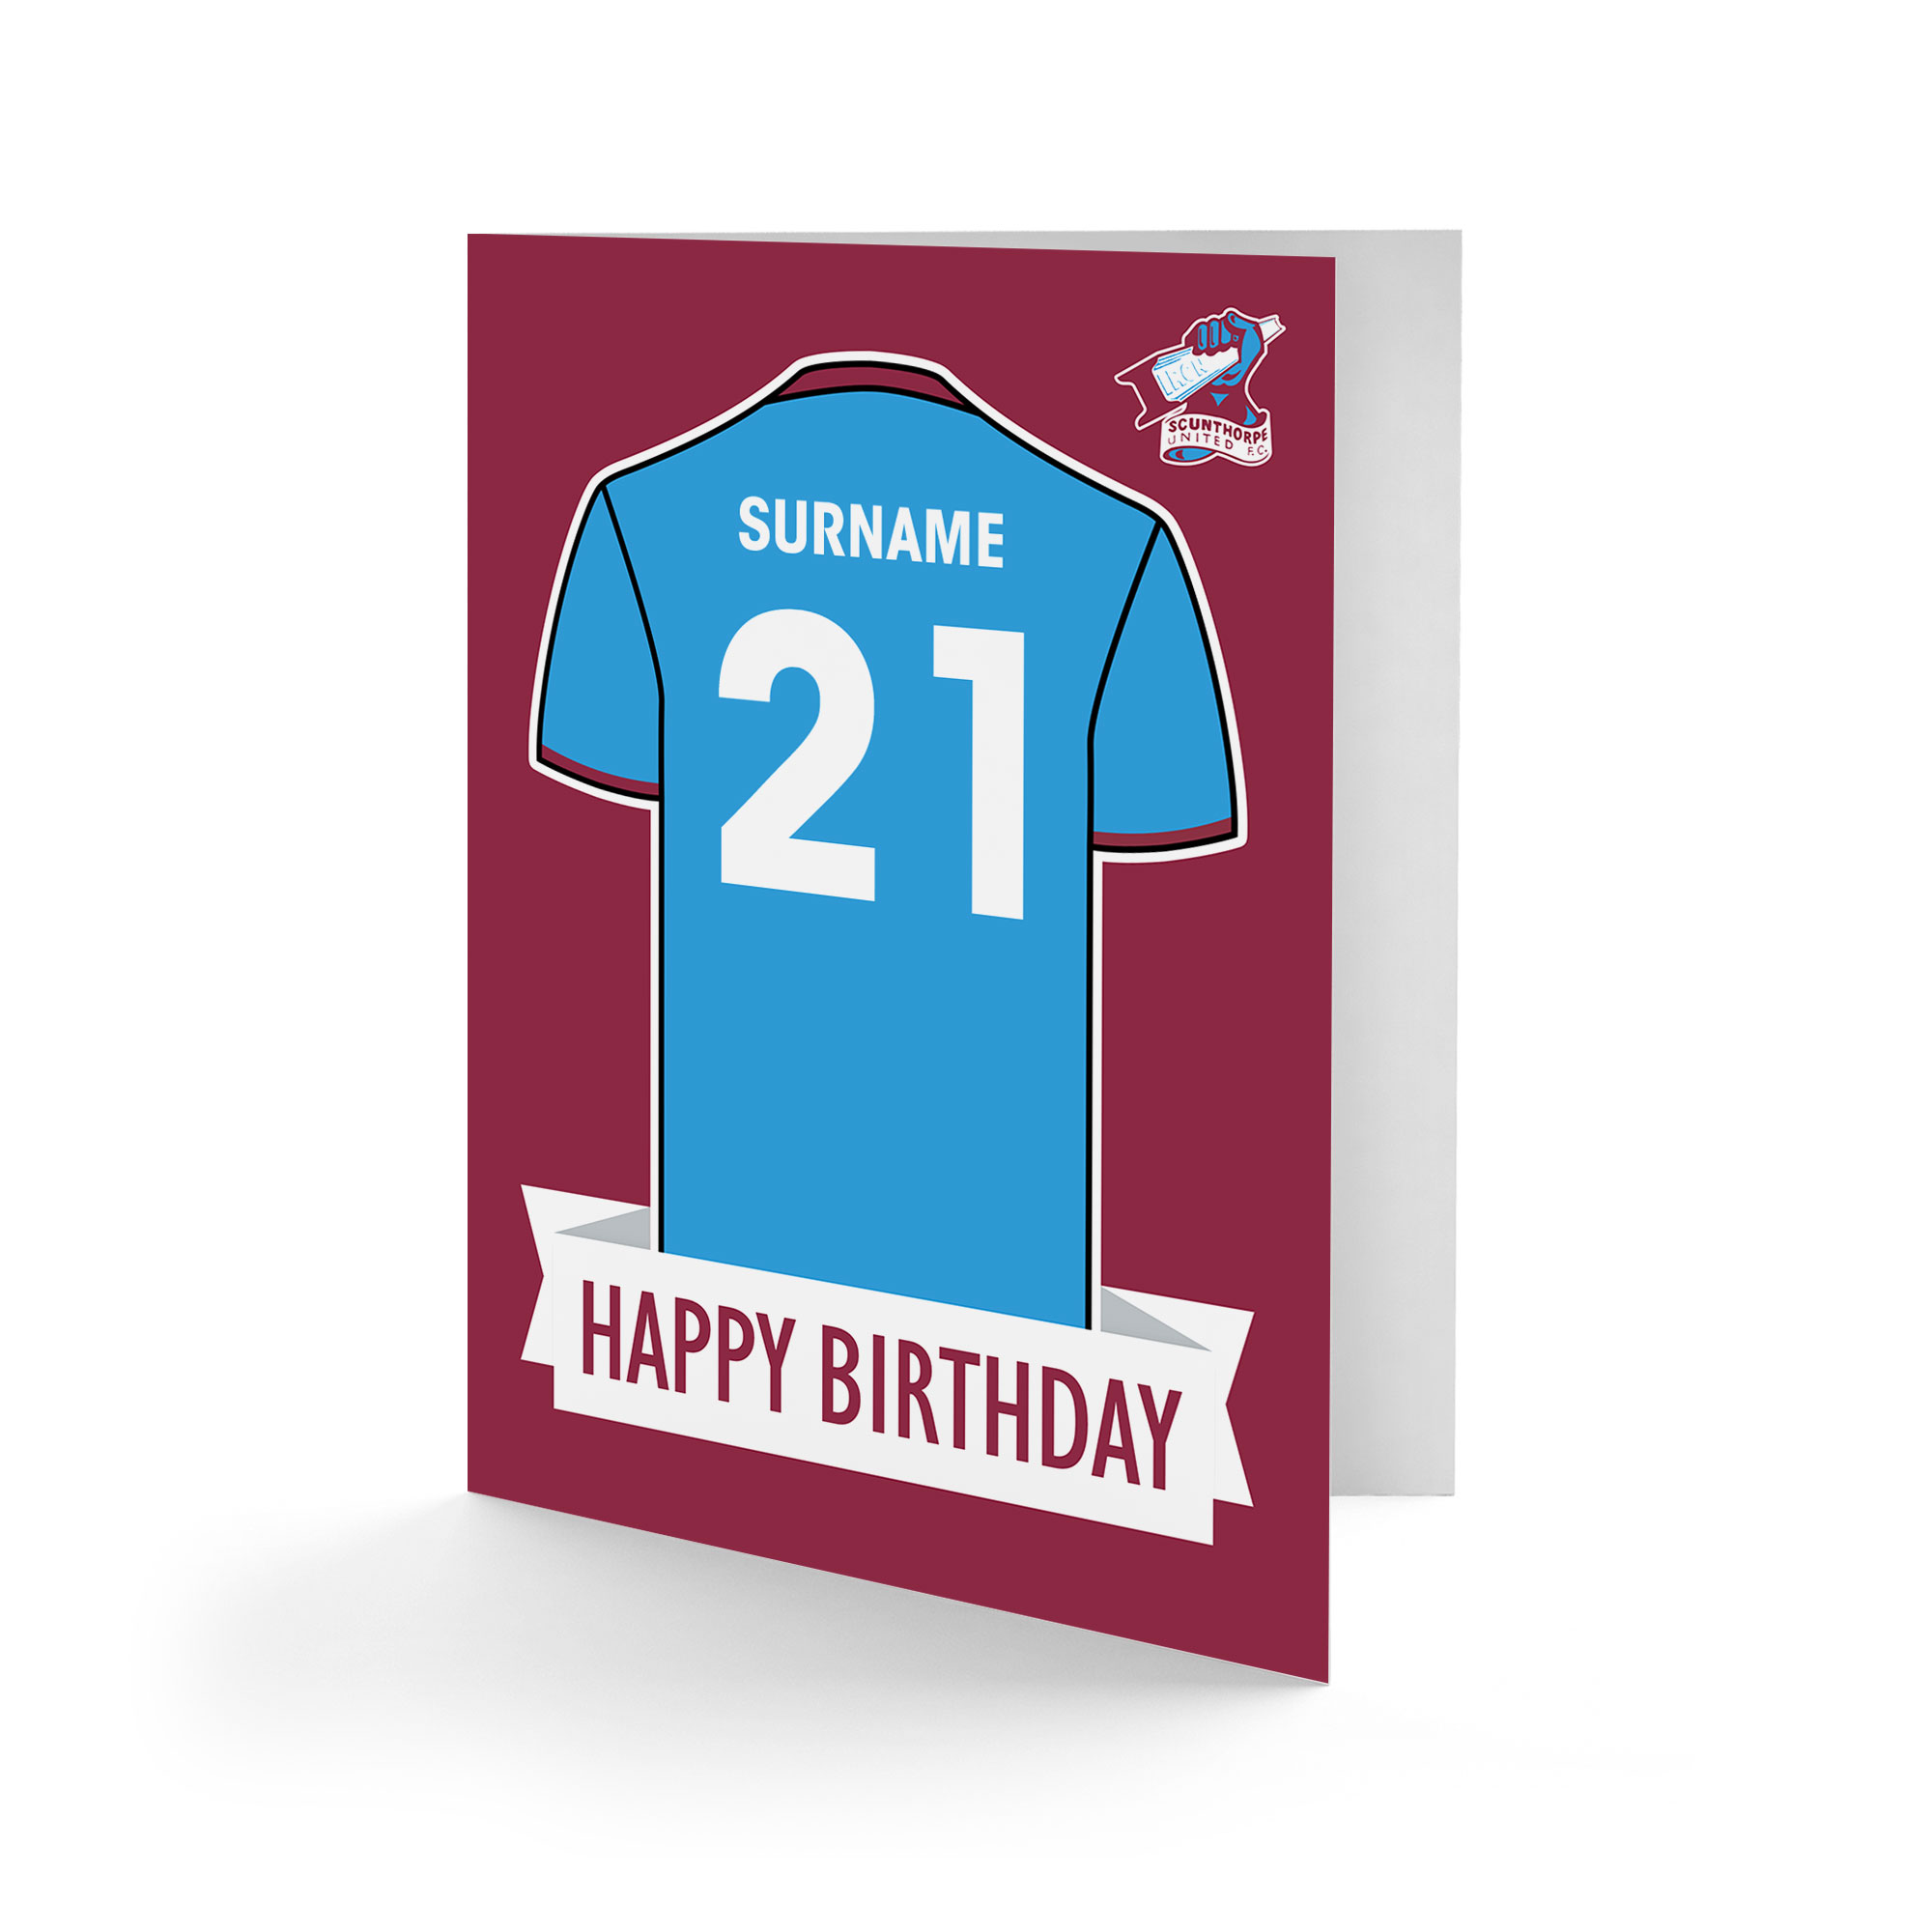 Scunthorpe United FC Shirt Birthday Card